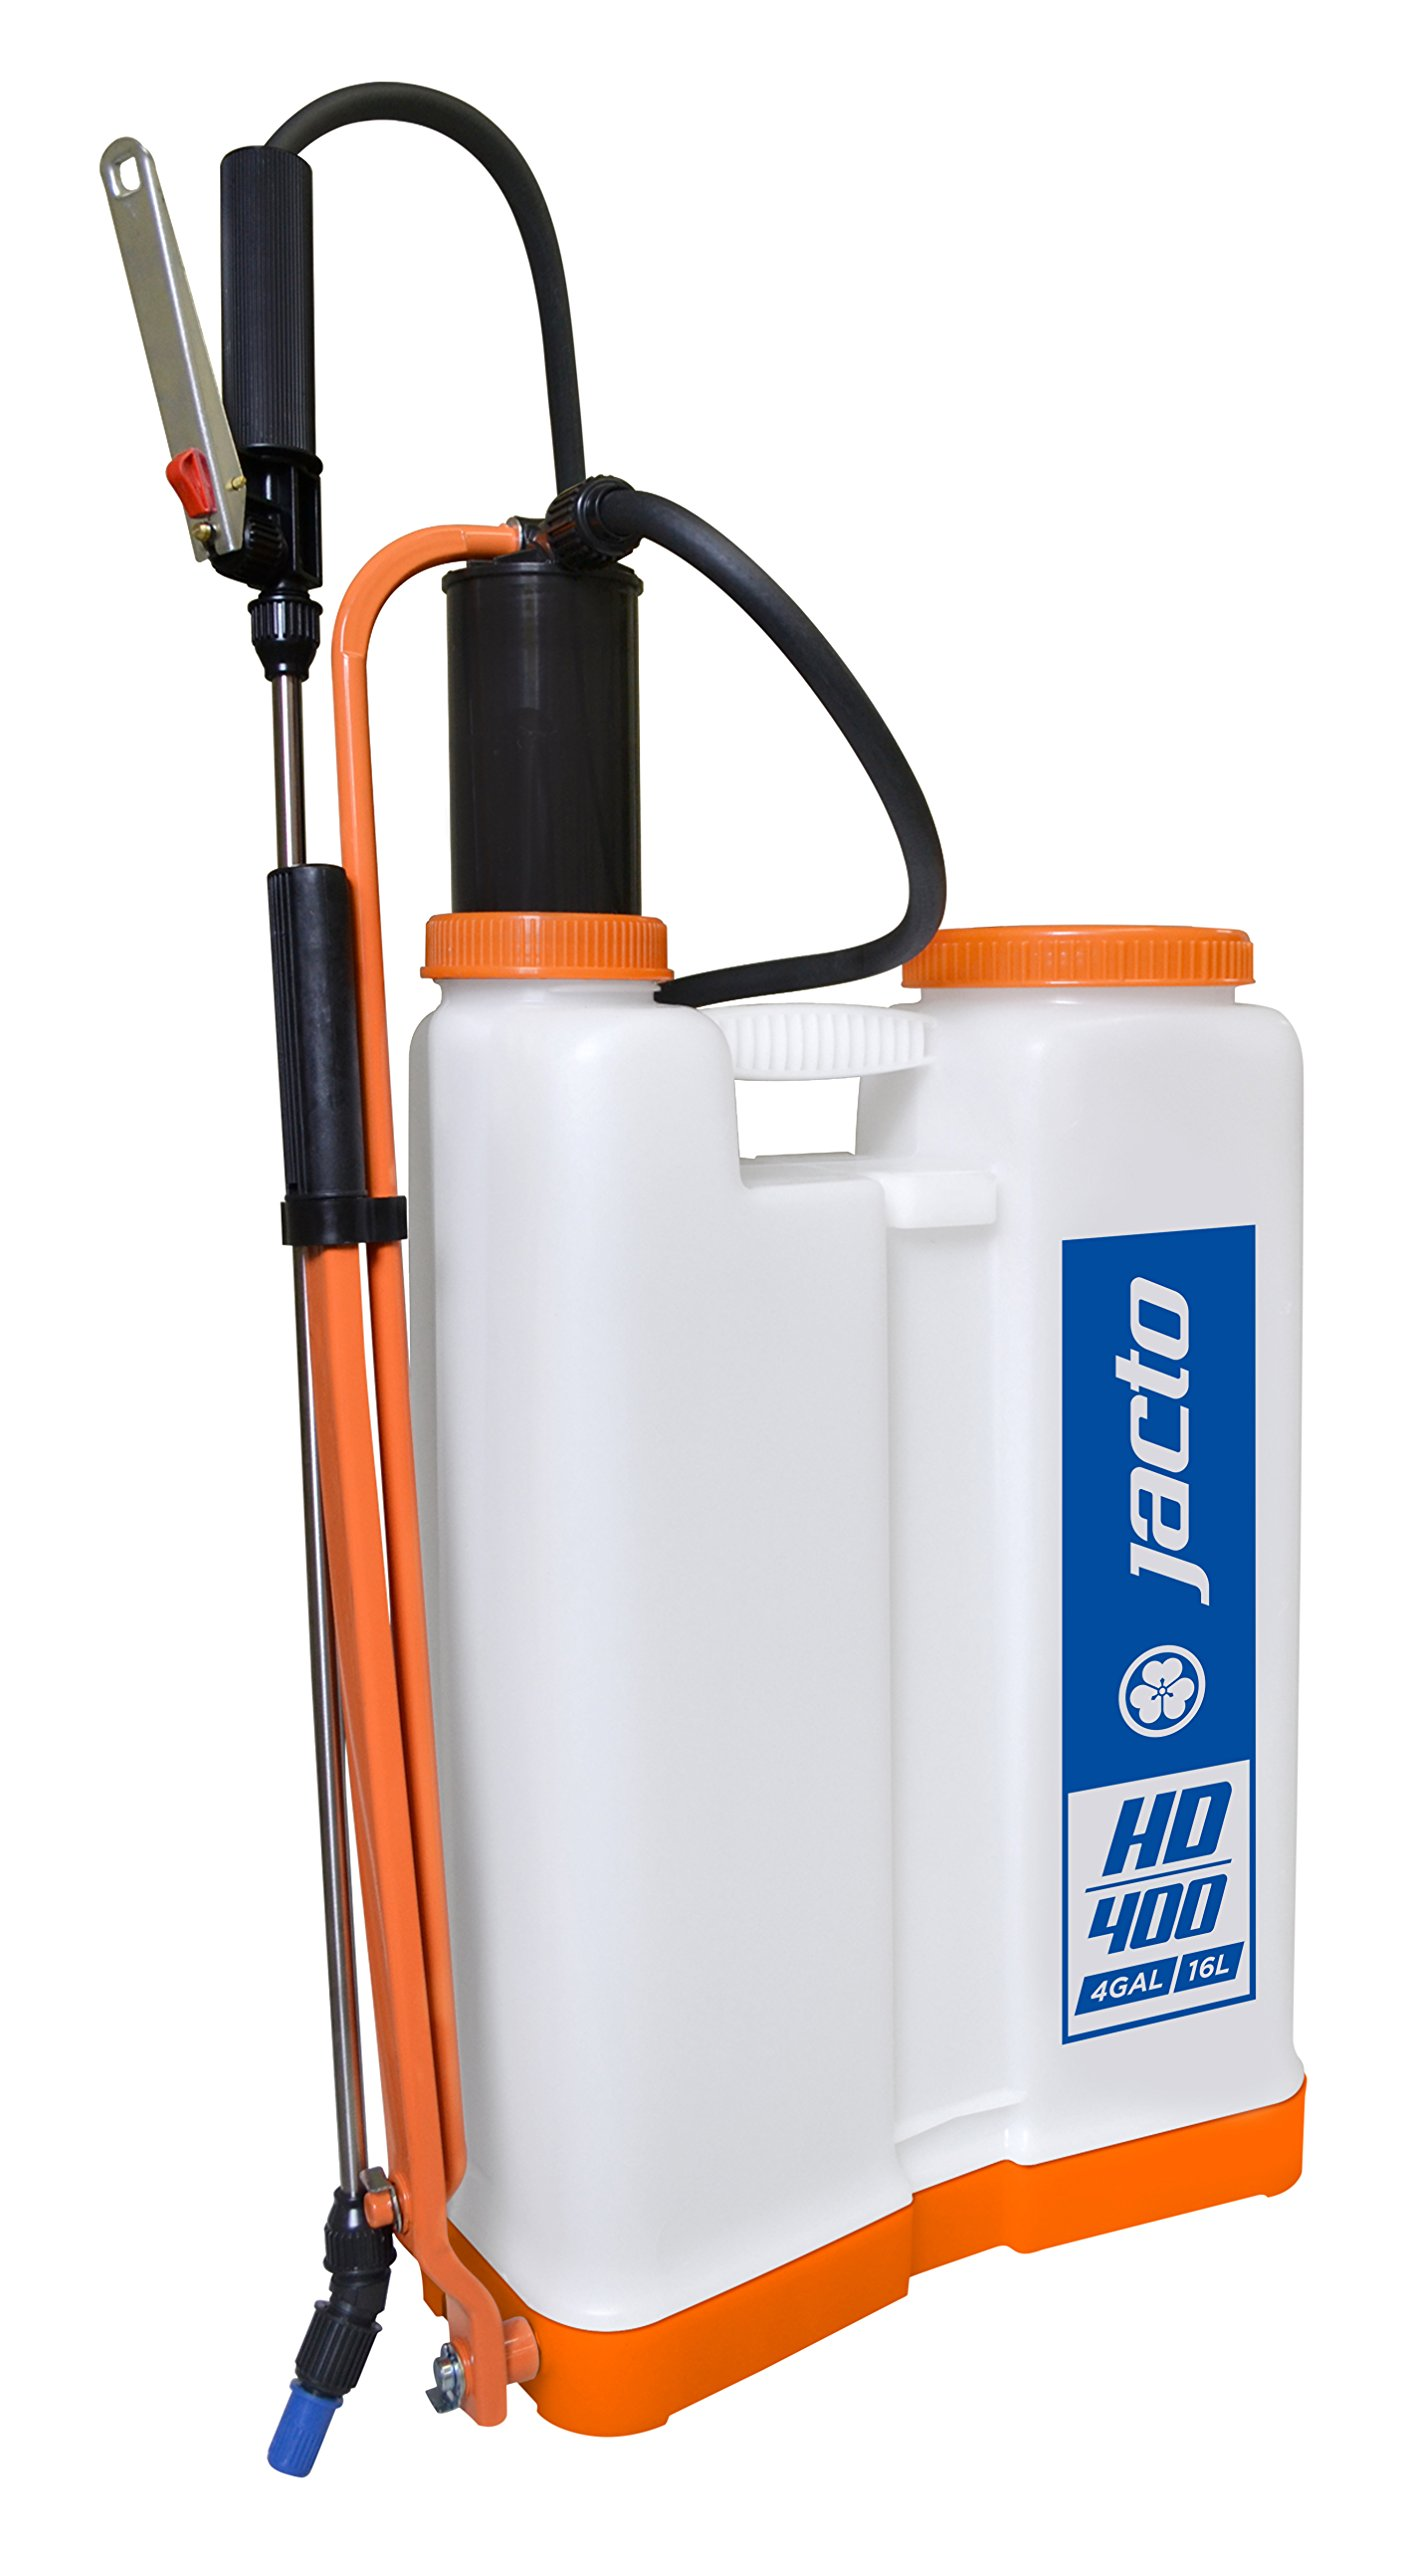 Jacto HD400 W/O Backpack Sprayer, Translucent White